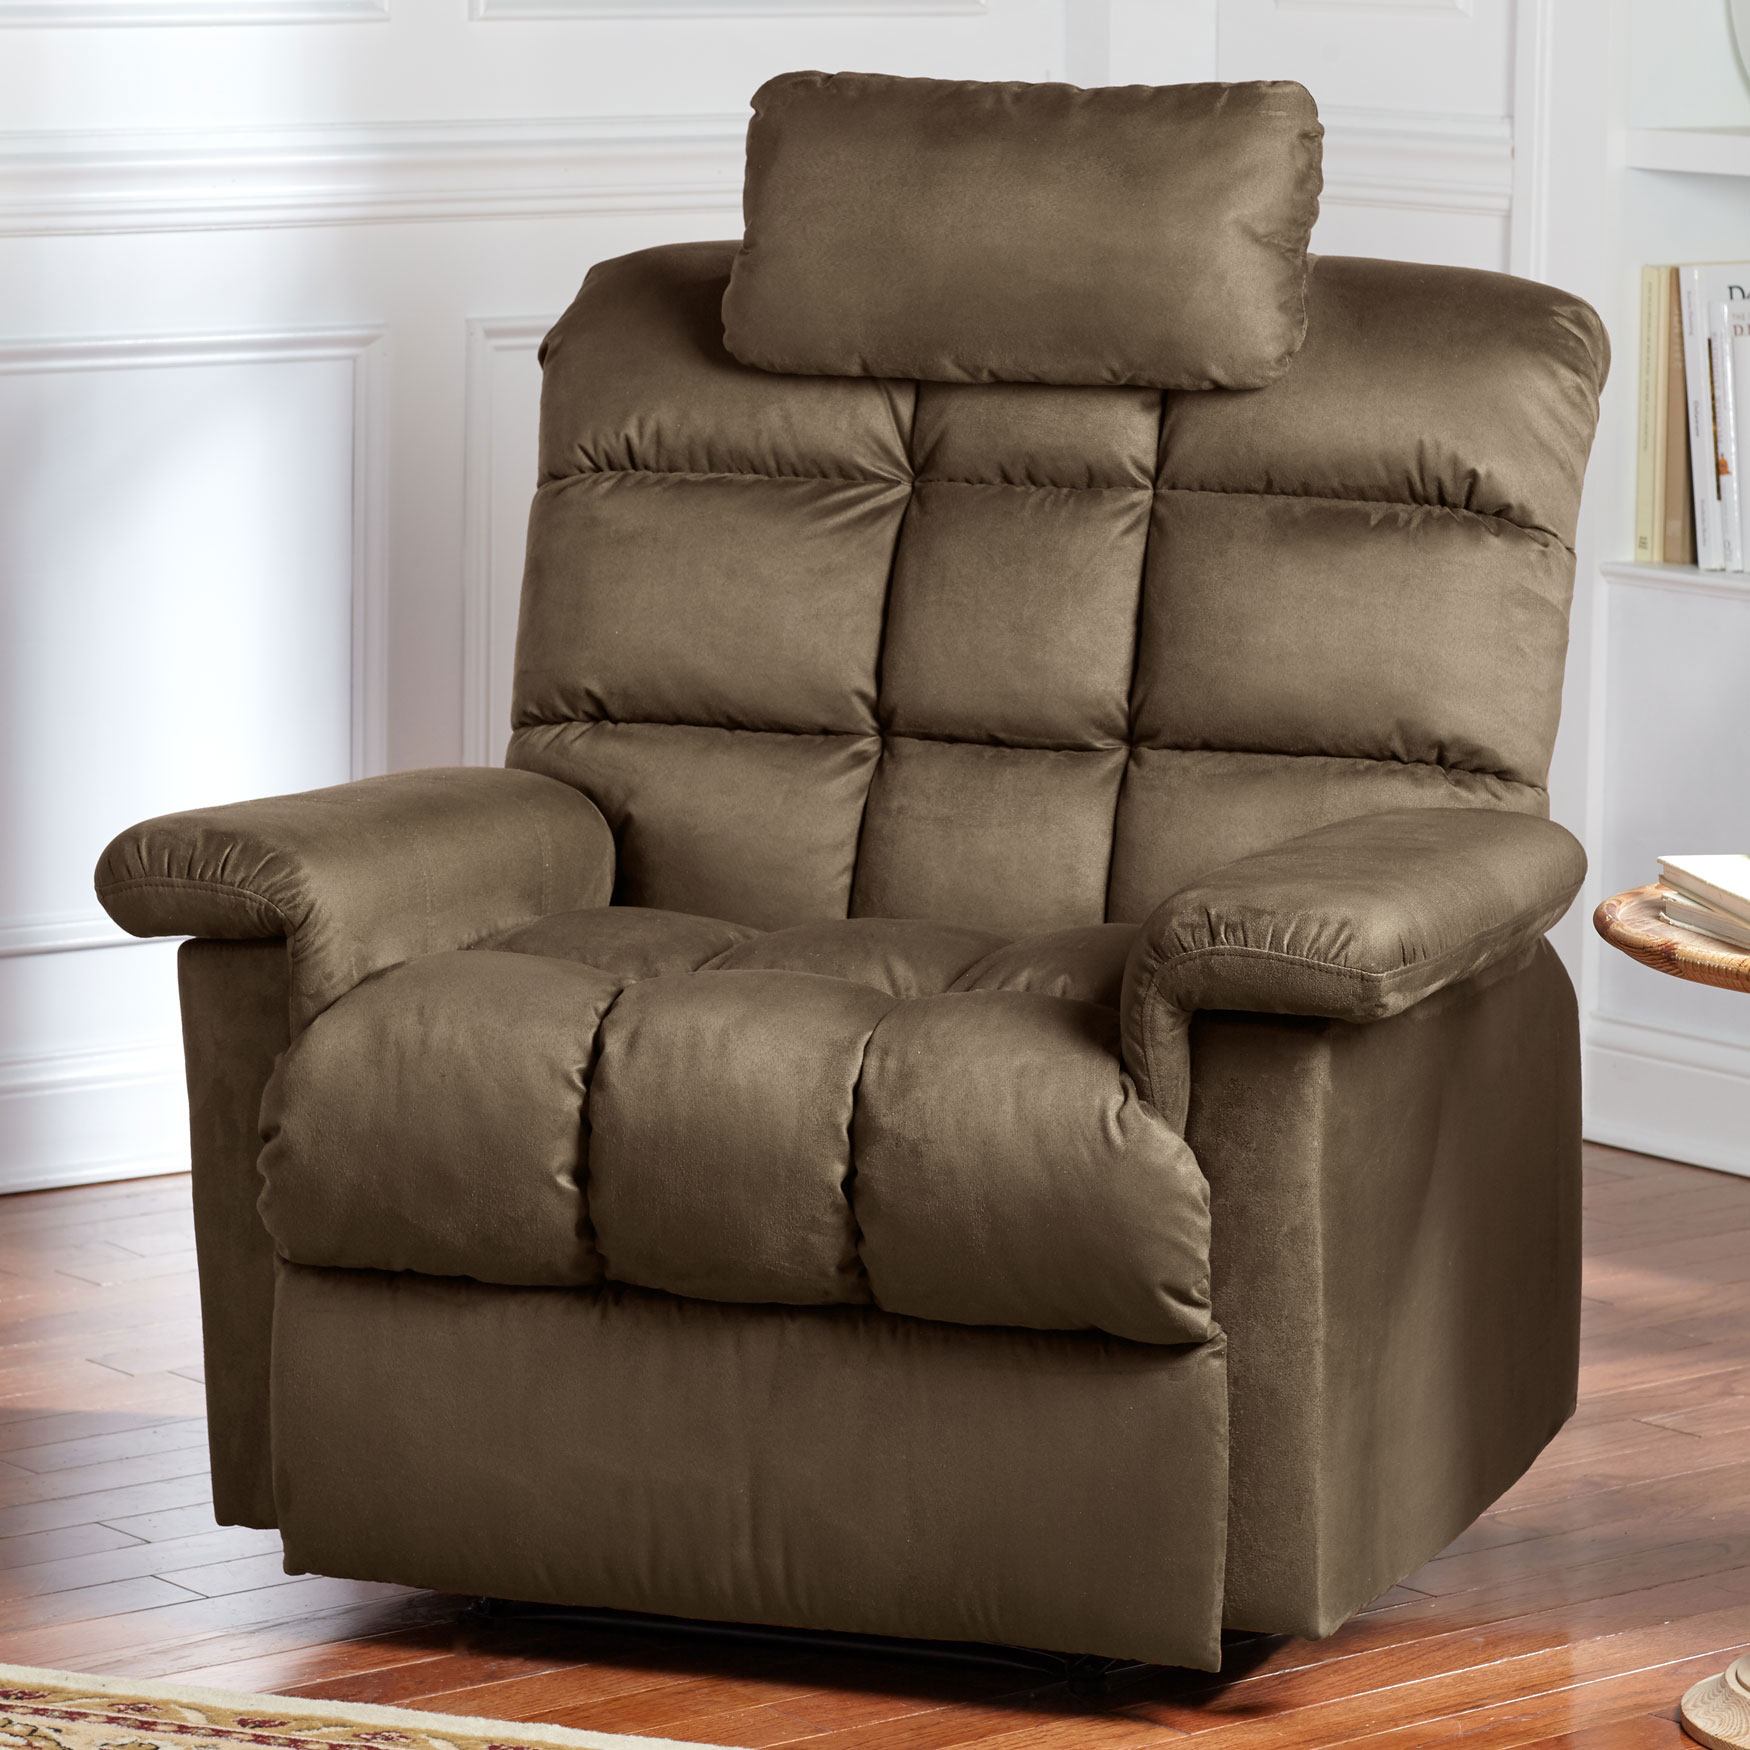 Oversized Pillowtop Recliner with Square Tufted Back, TAUPE